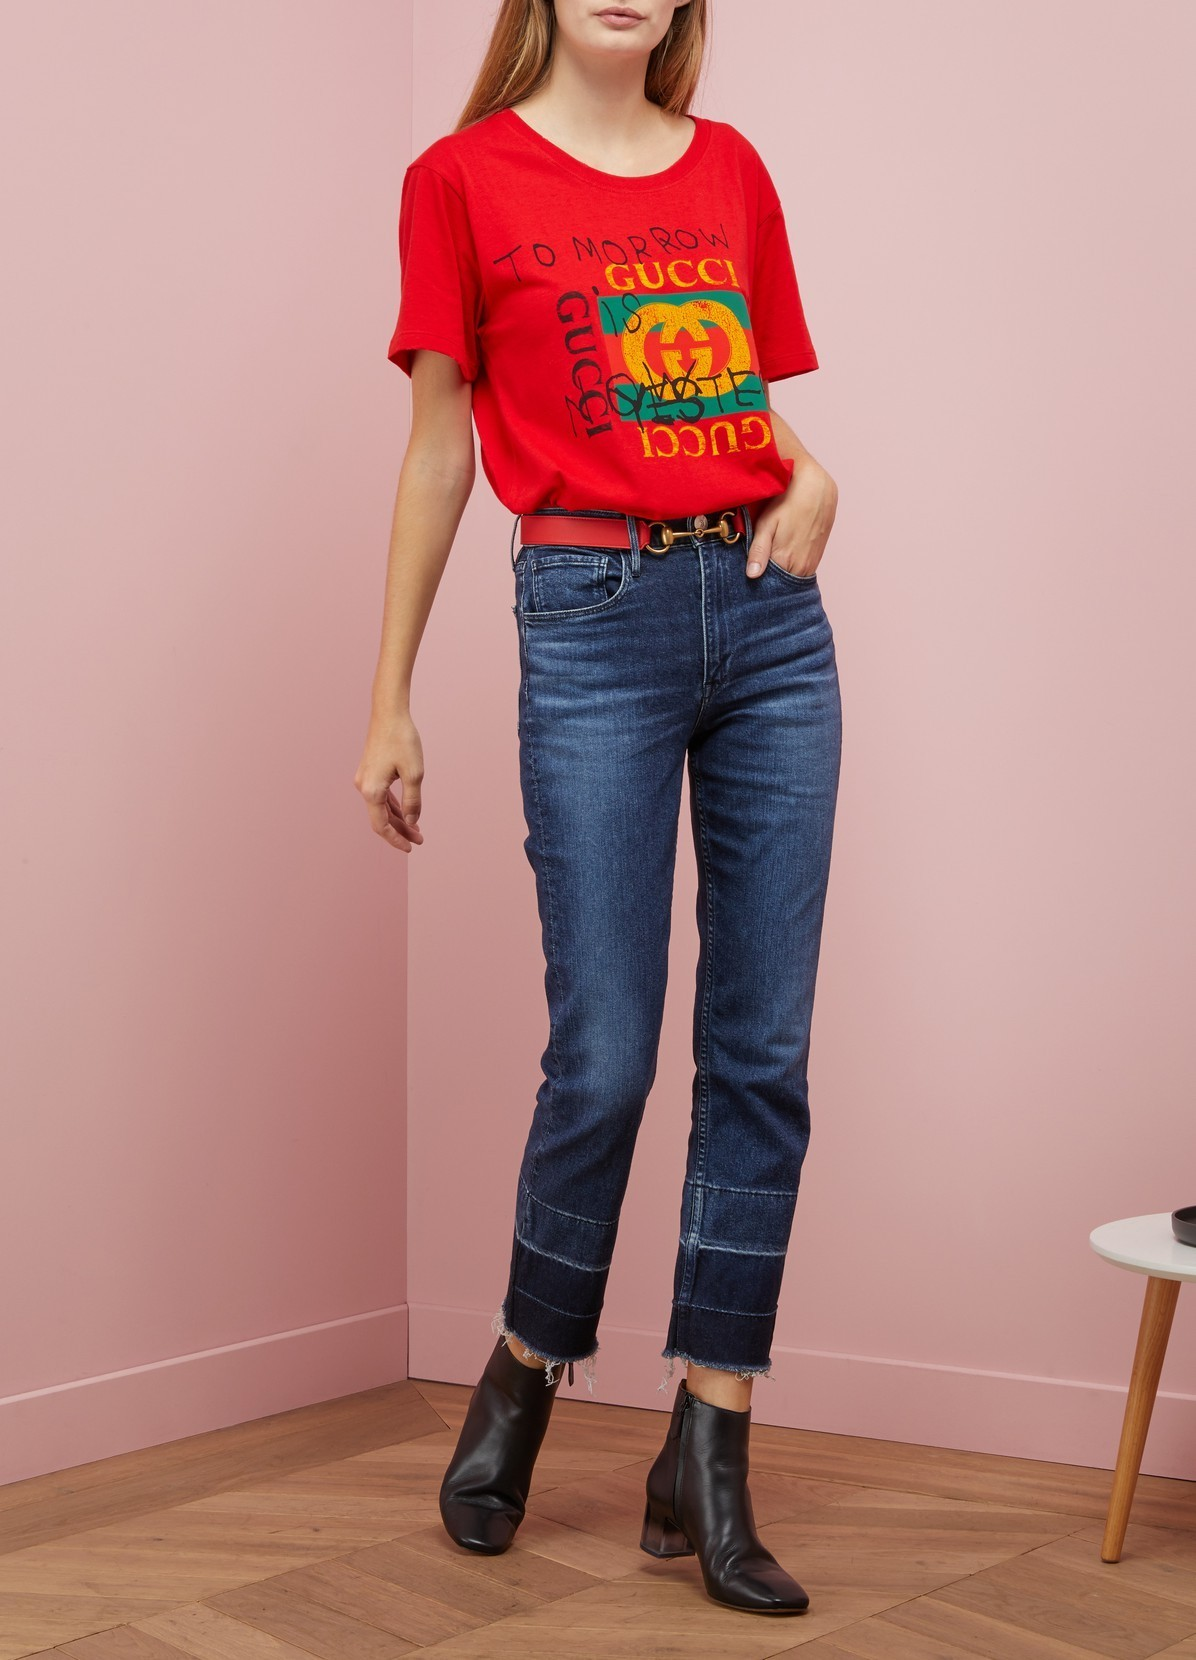 GUCCI グッチ  ロゴ プリント Tシャツ